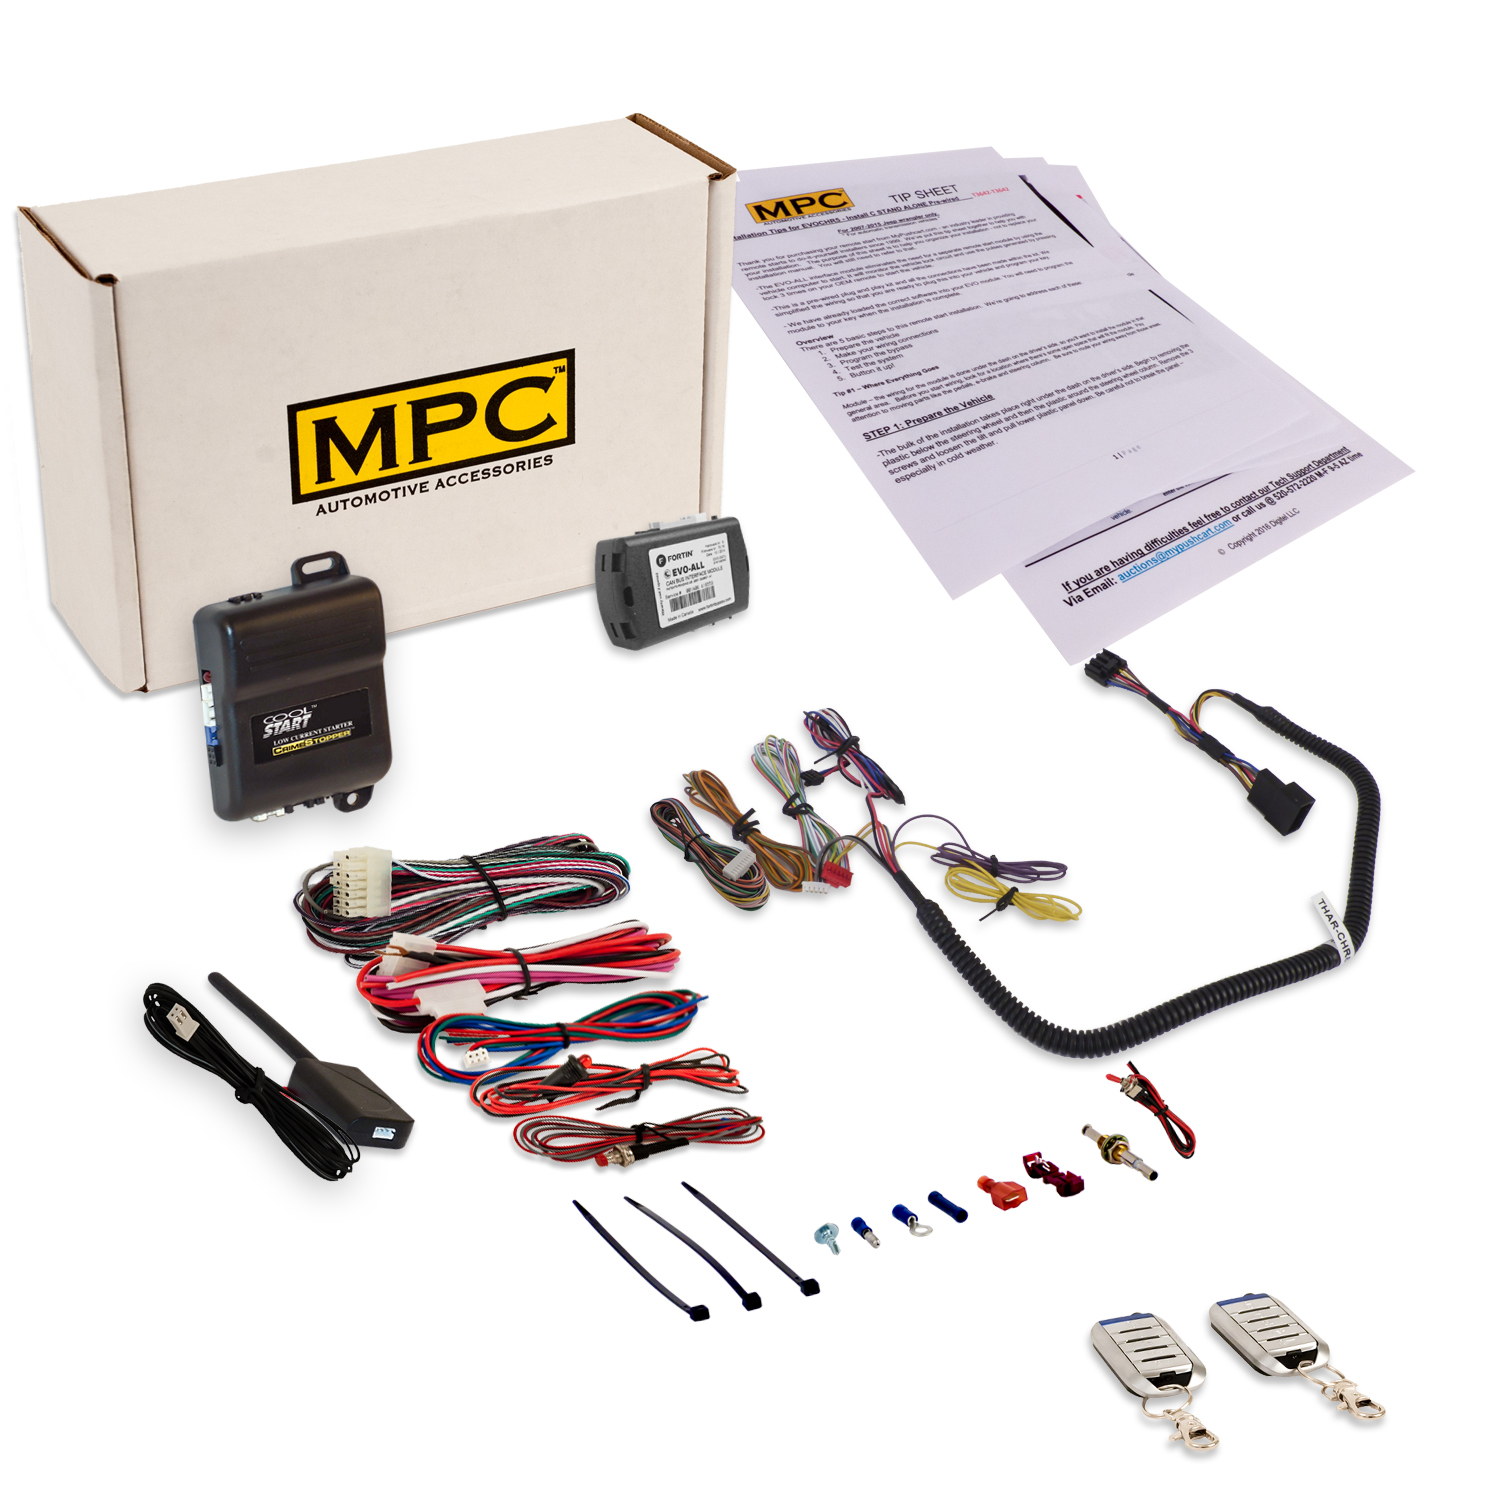 MPC Complete Remote Start w/ Keyless Entry Fits Chrysler,...